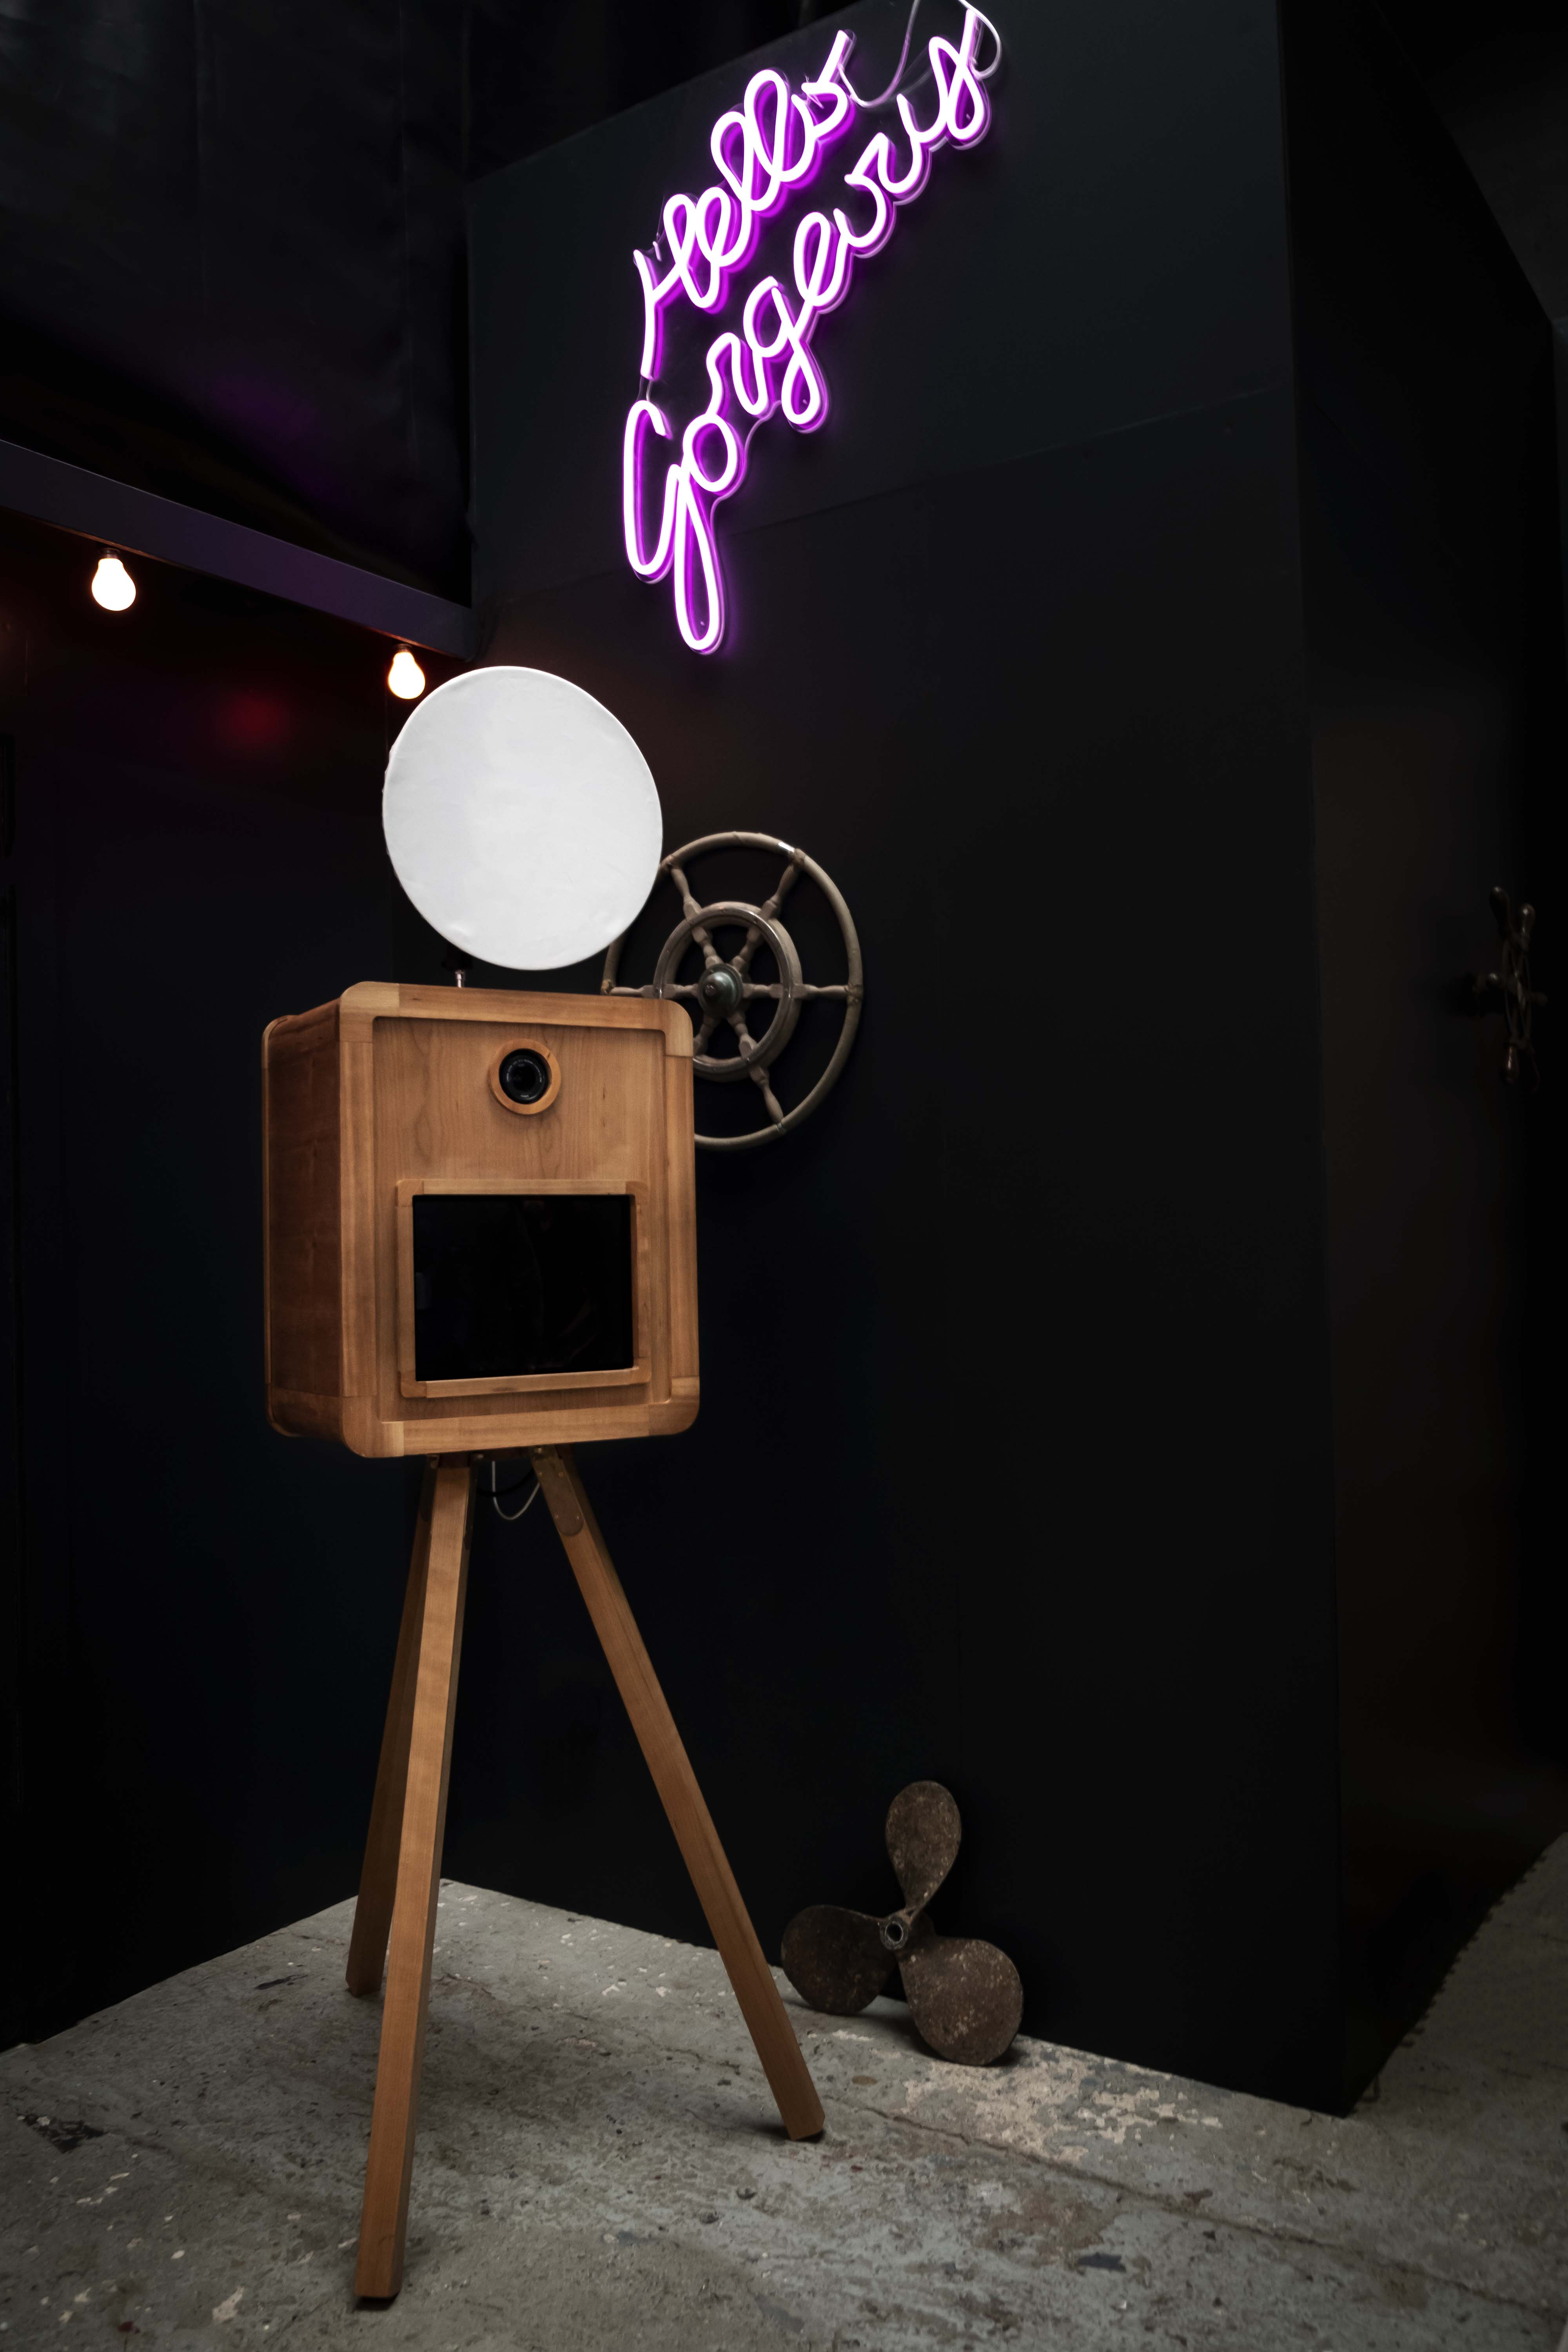 wooden vintage camera photo booth